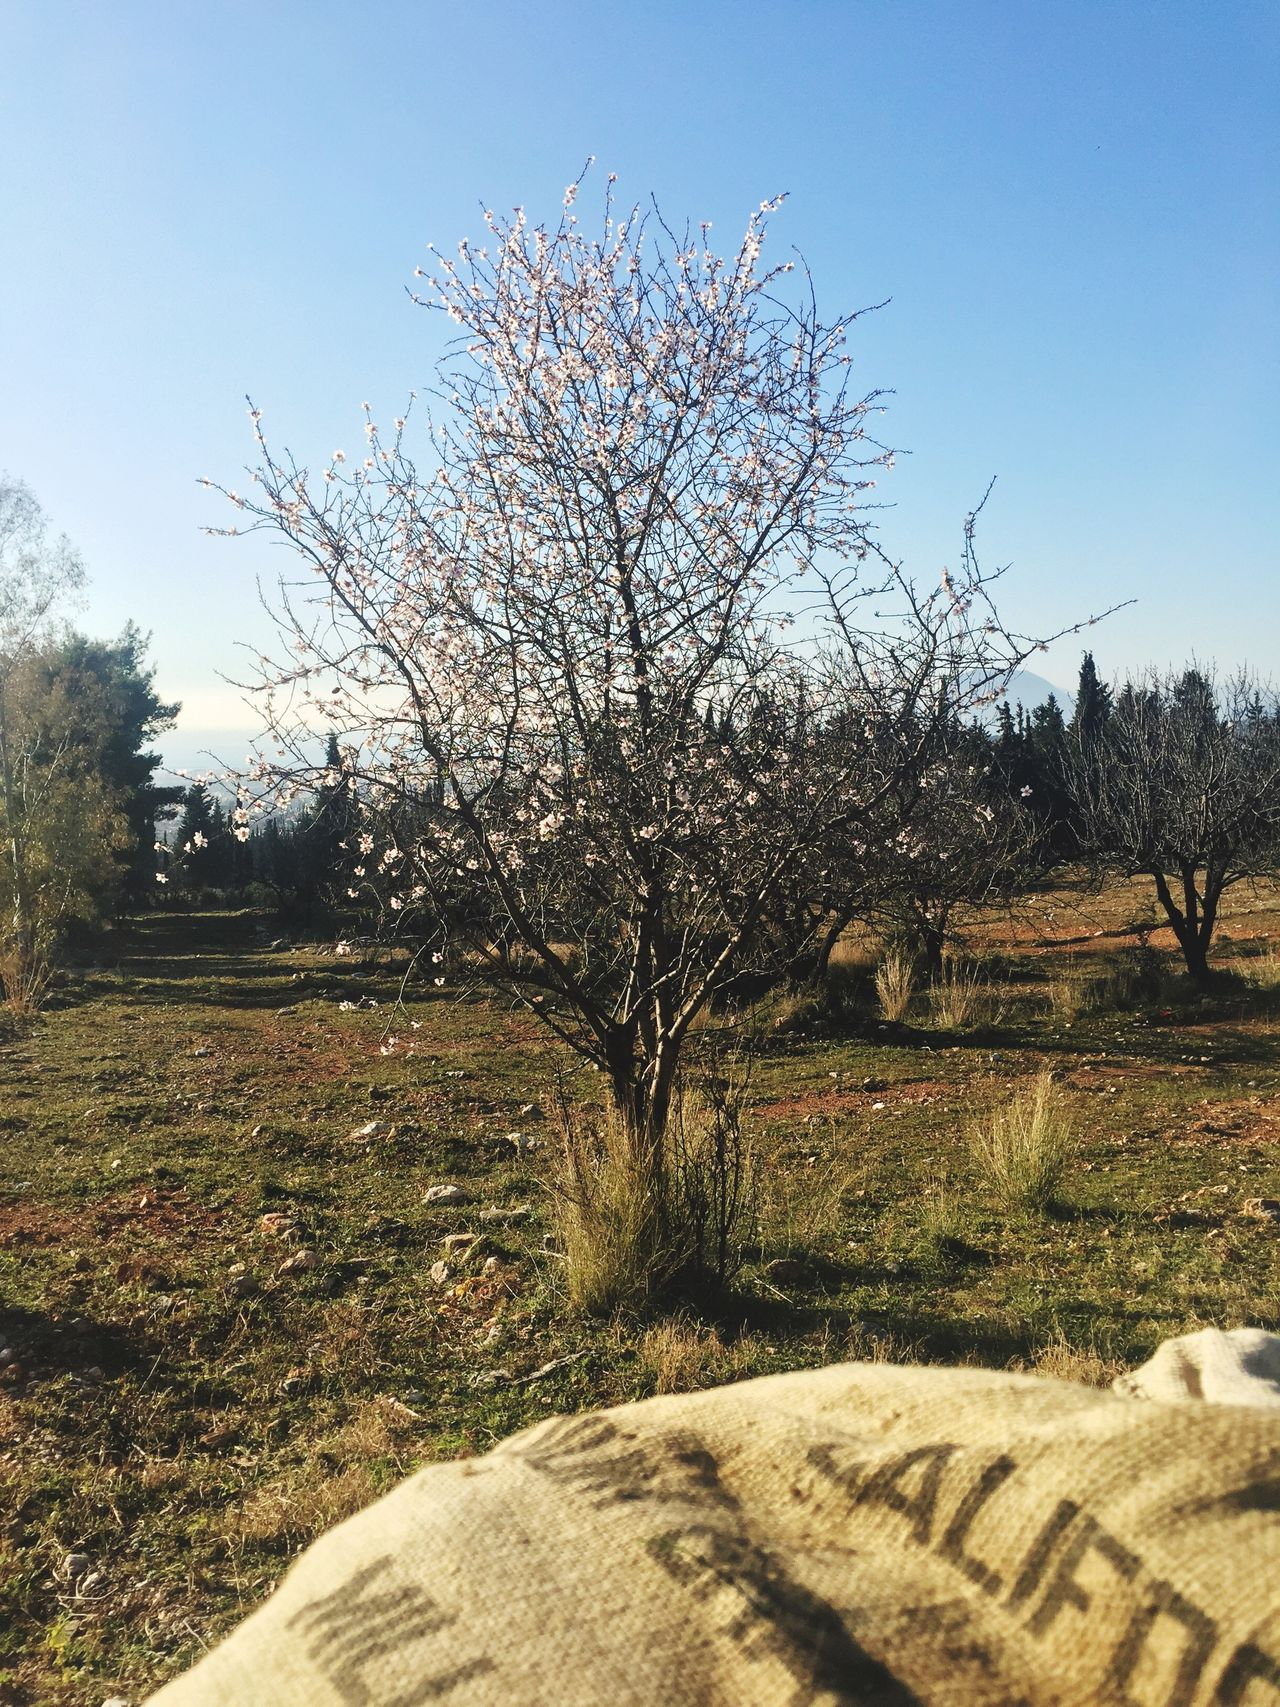 Sunny Day ☀ Almond Tree Spring Has Arrived